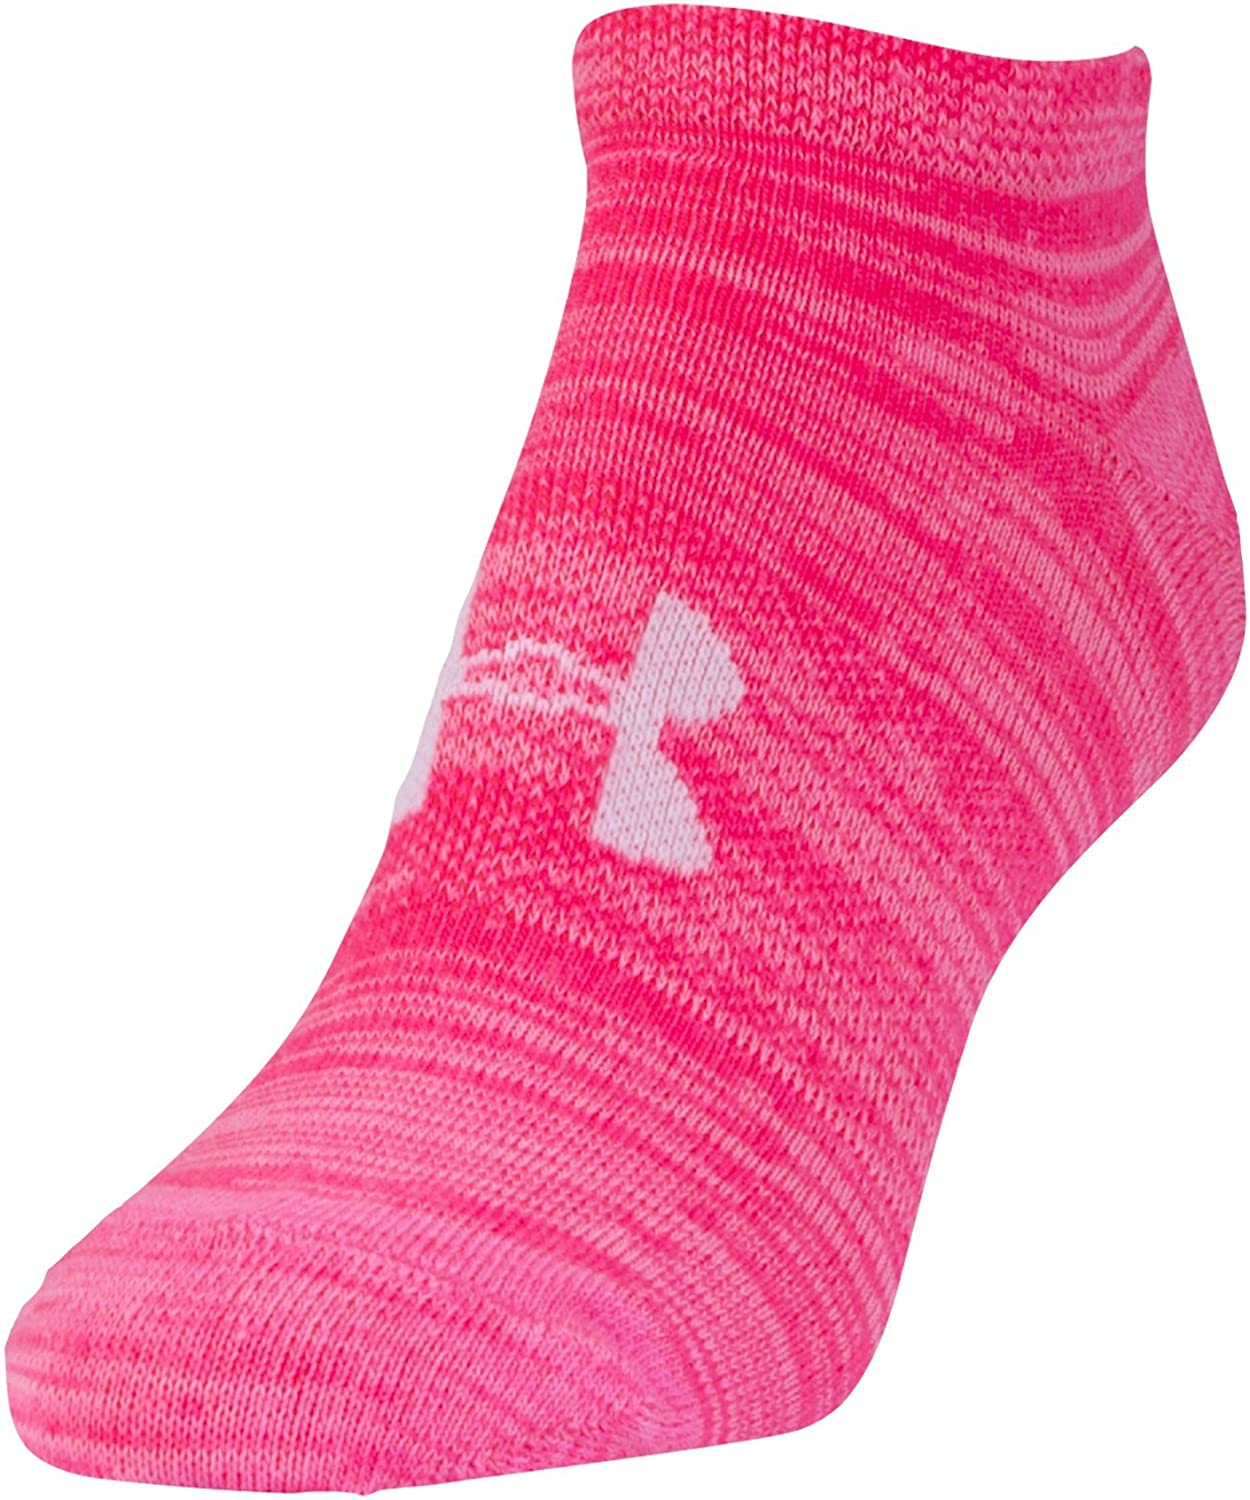 6 Pack Under Armour Womens Essential Twist No Show Socks Medium Bright Assortment